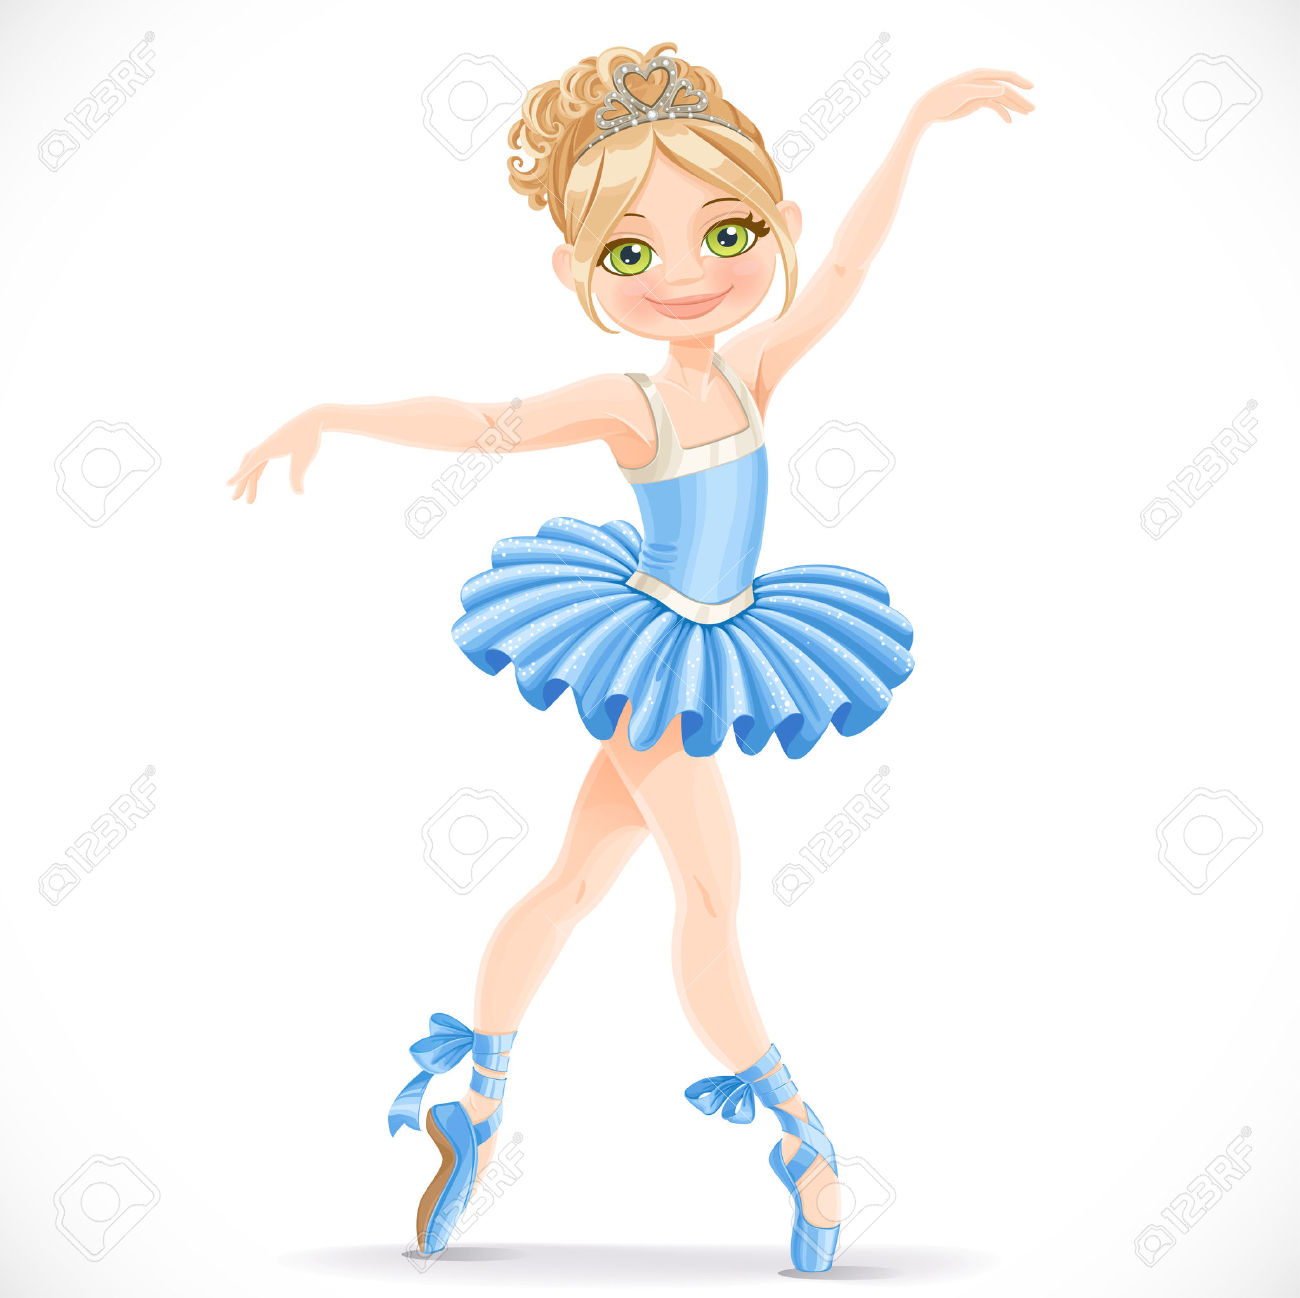 ballerina pictures images free download best ballerina free animated christmas lights clipart free animated christmas clipart for powerpoint